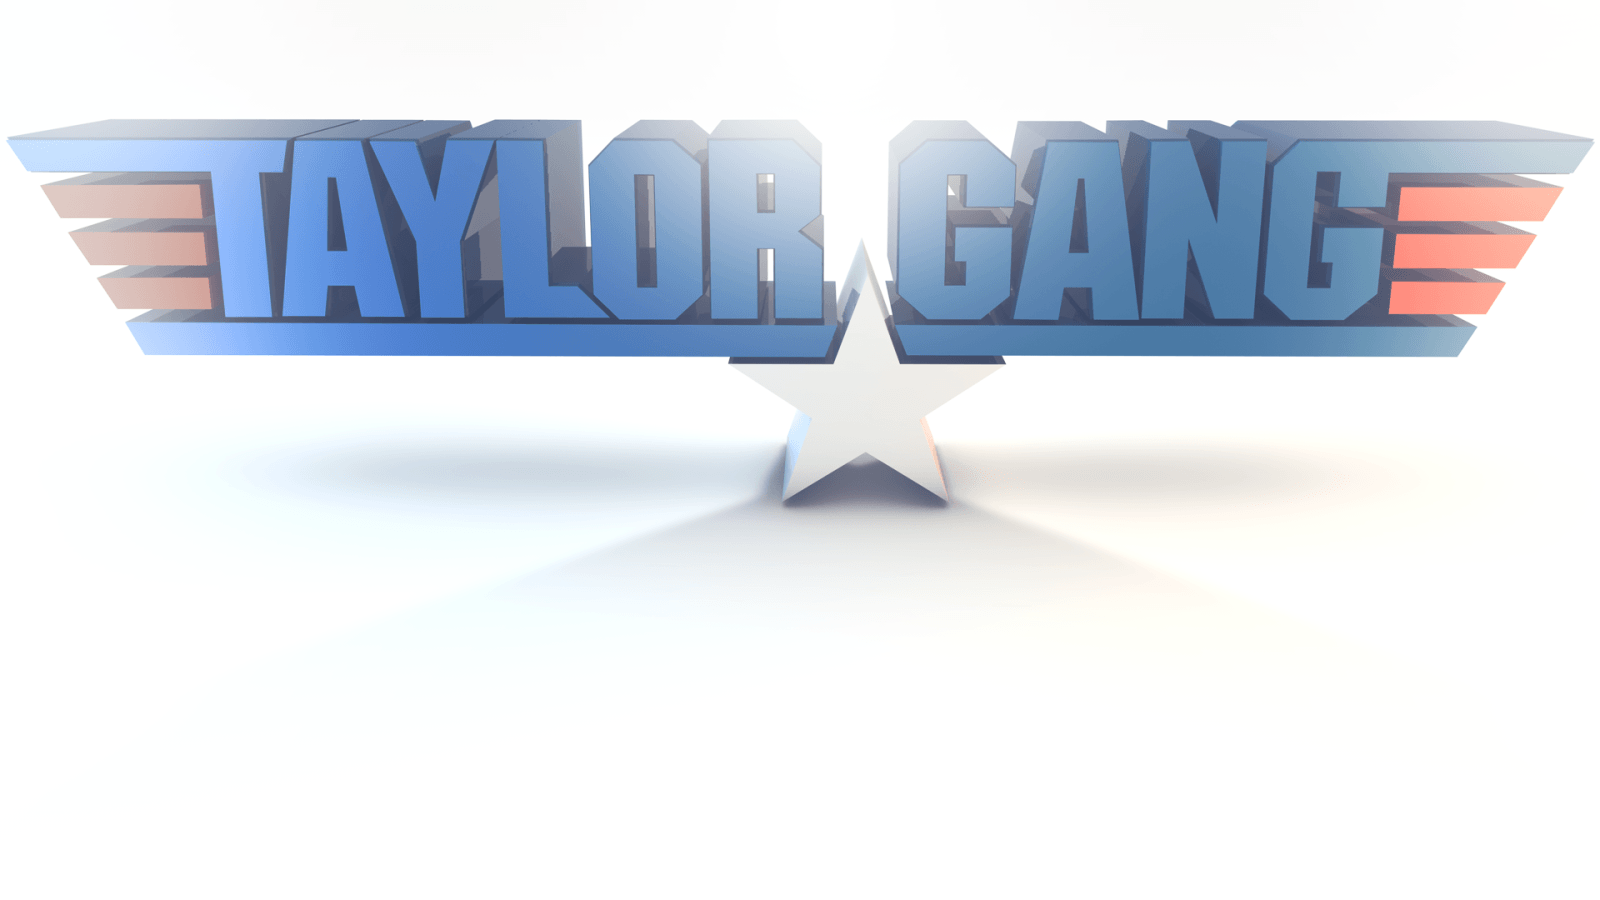 Taylor gang clipart hd - ClipartFox